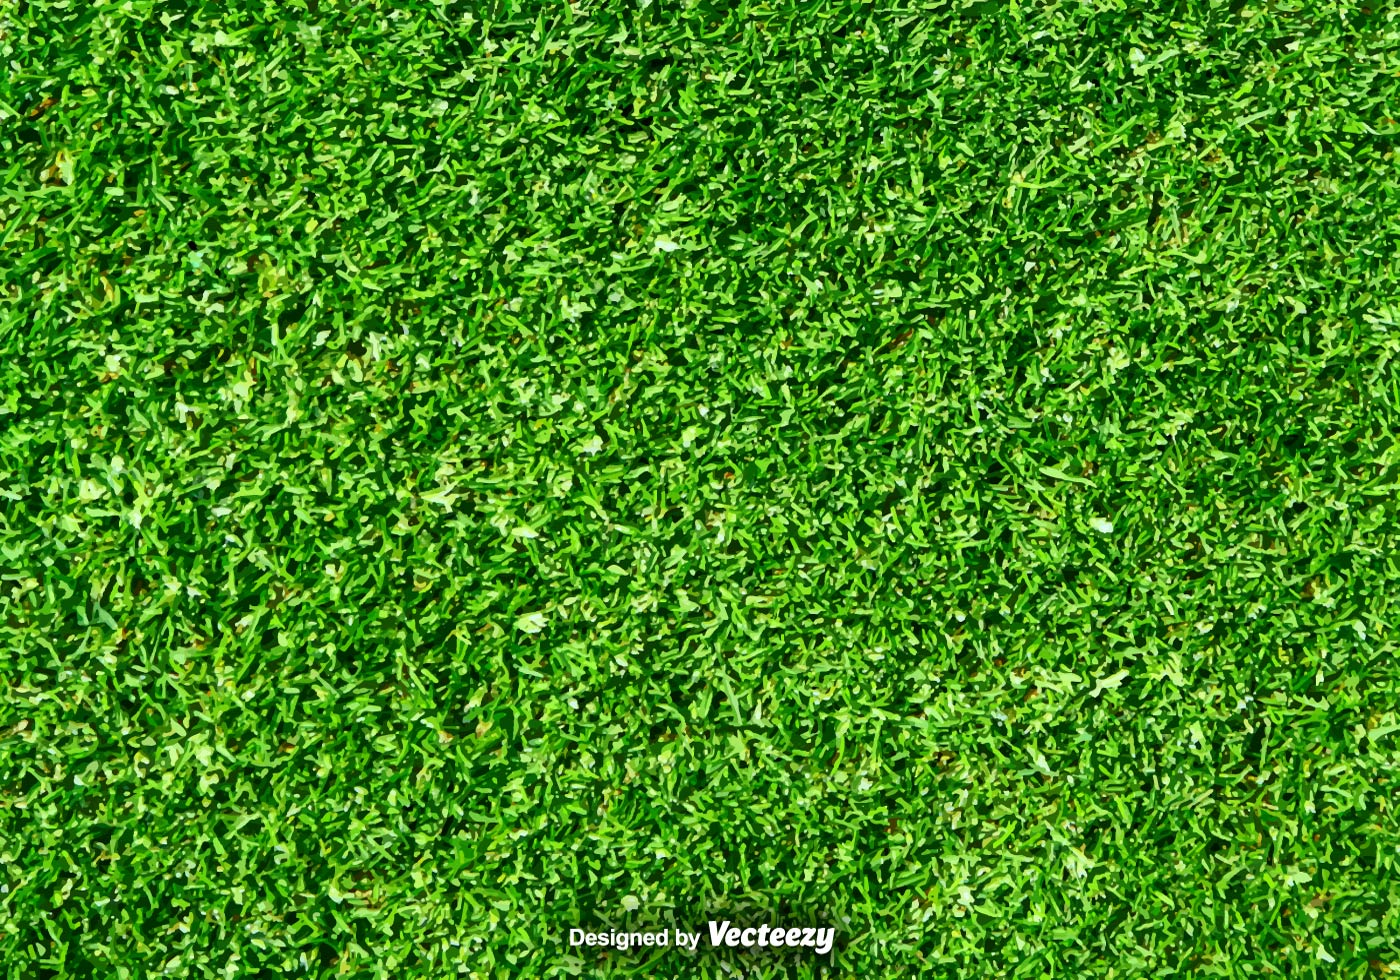 Lawn Nature Green Grass Vector Background Download